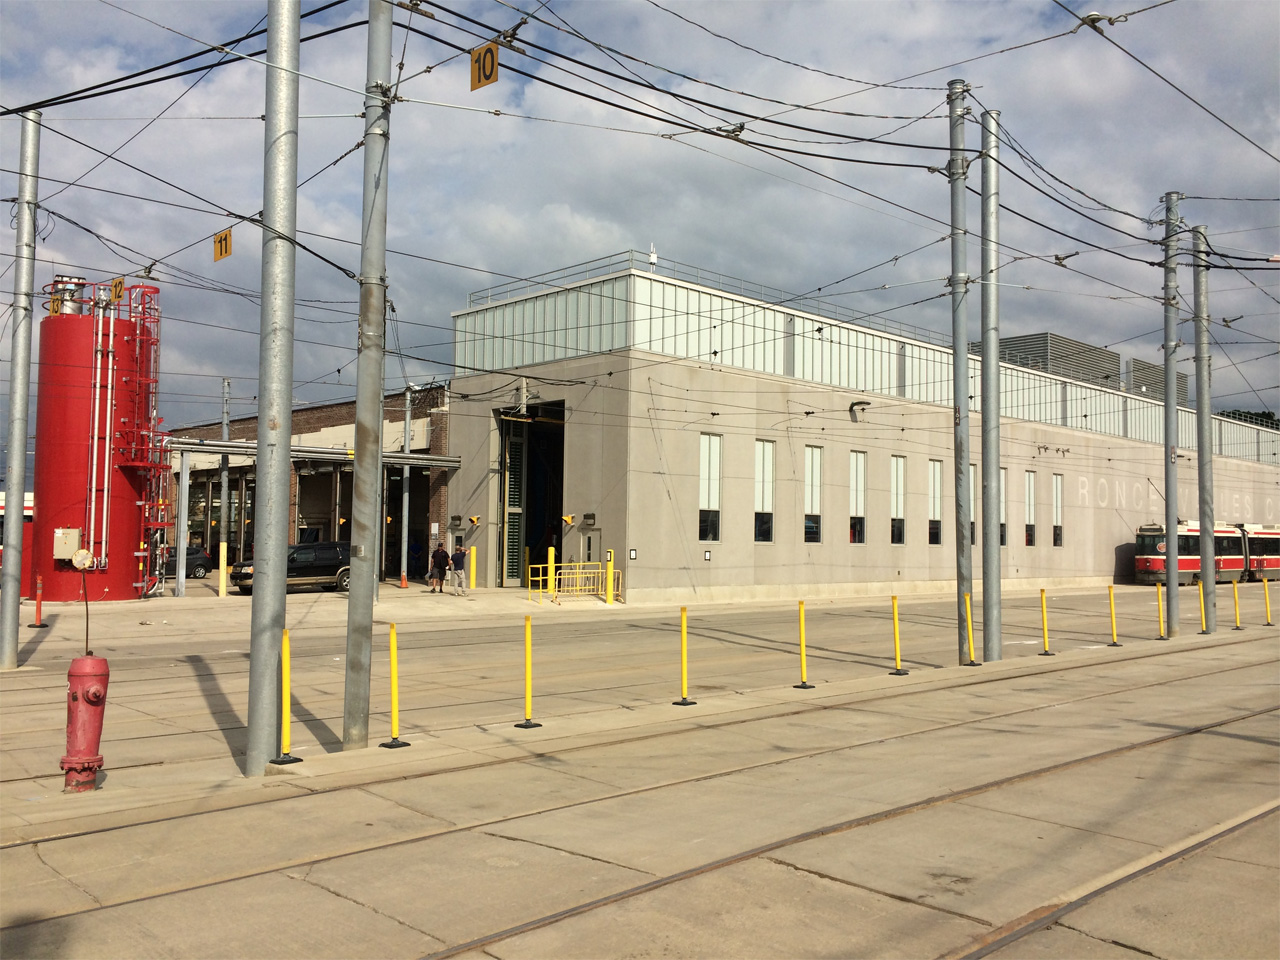 Hero Image of Roncesvalles Carhouse Extension